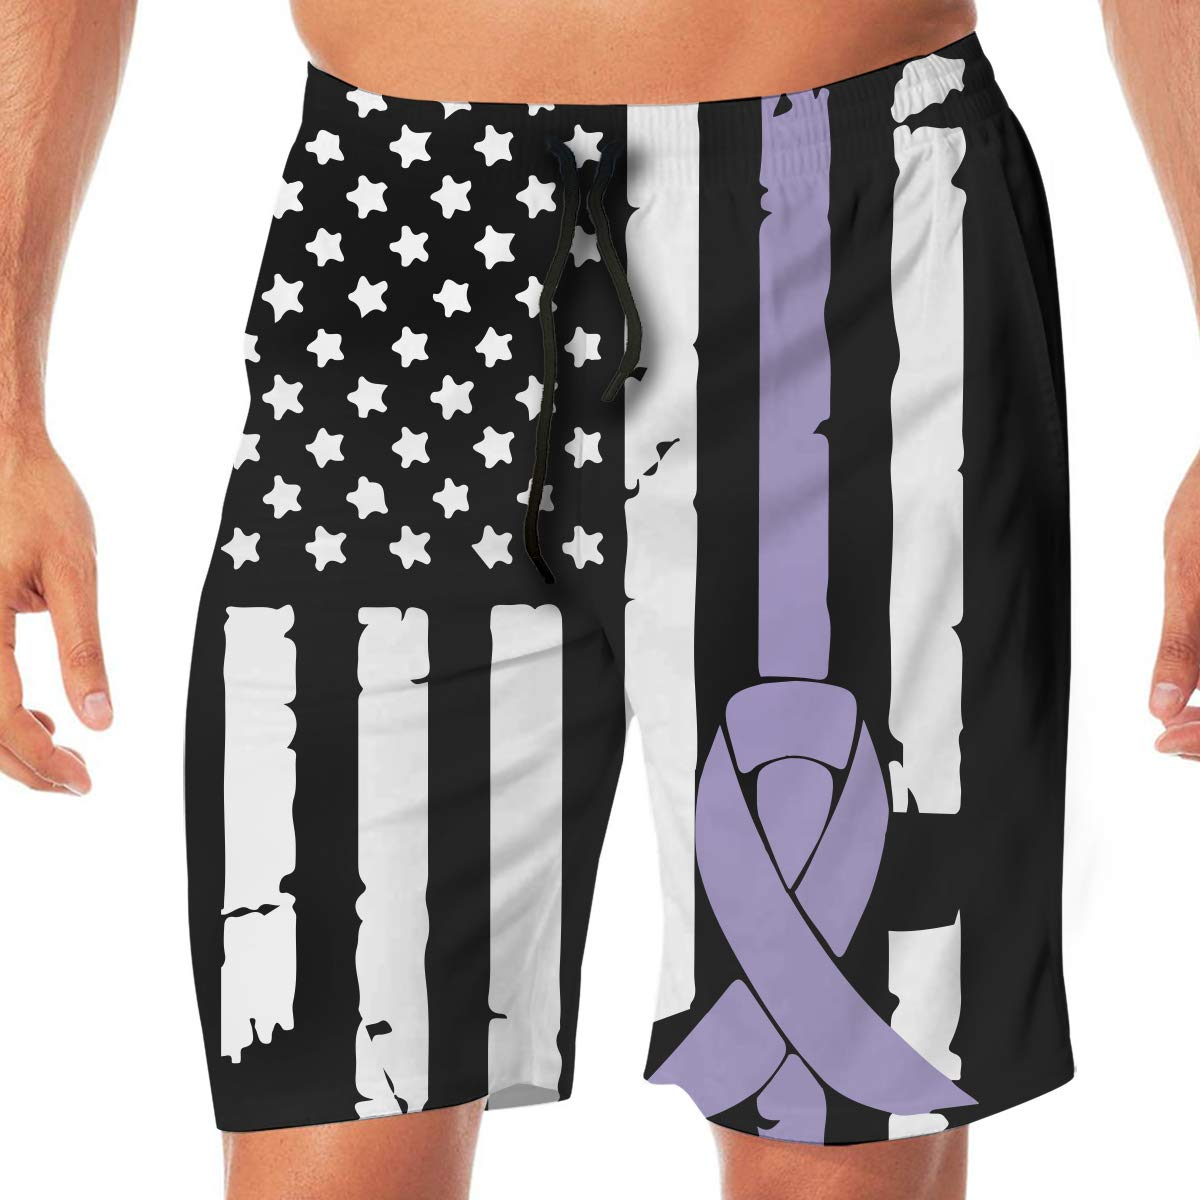 YGE.I.L25 Mens Surfing Boardshorts Testicular Cancer Awareness USA Flag-1 Summer Vacation Beach Board Short with Pocket